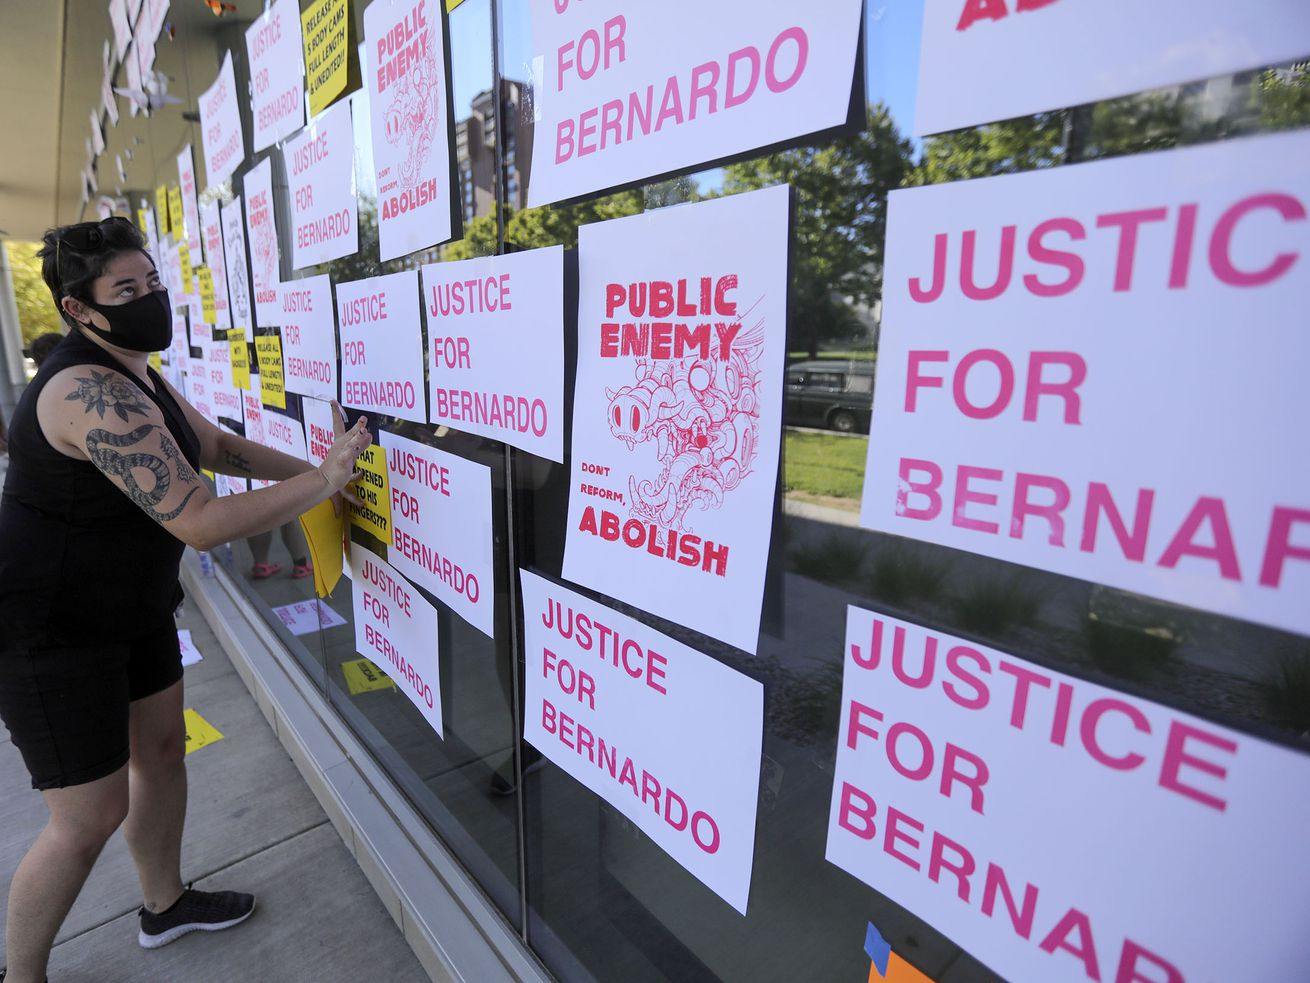 Kaitlyn Mahoney hangs a sign on the Salt Lake County District Attorney's Office during a rally in Salt Lake City on Monday, June 22, 2020, denouncing the death of Bernardo Palacios-Carbajal, who was shot and killed by Salt Lake police in May.